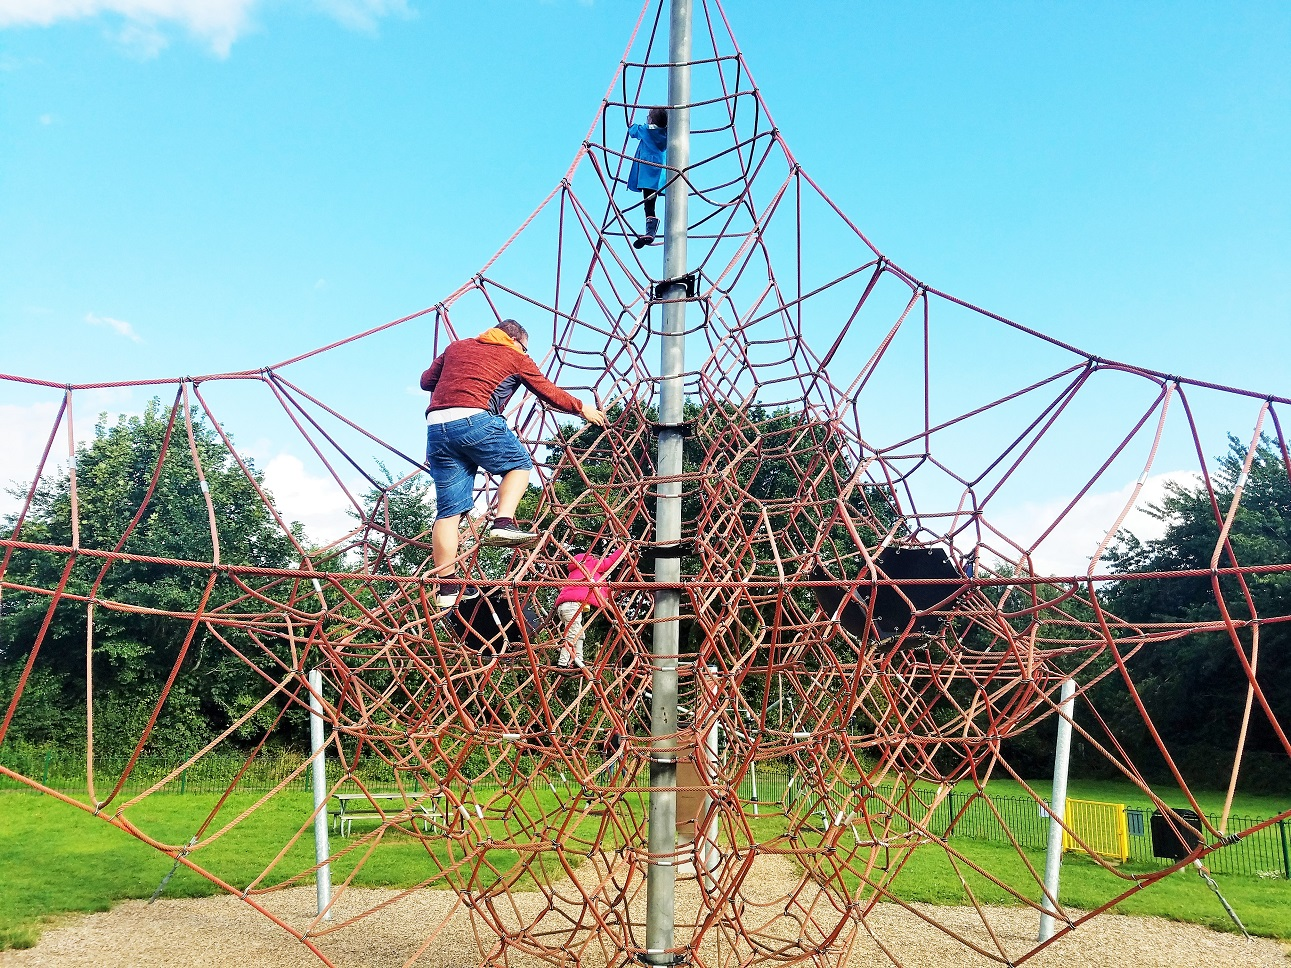 Easy ways for parents to give positive attention to their children - dad and kids on a climbing frame